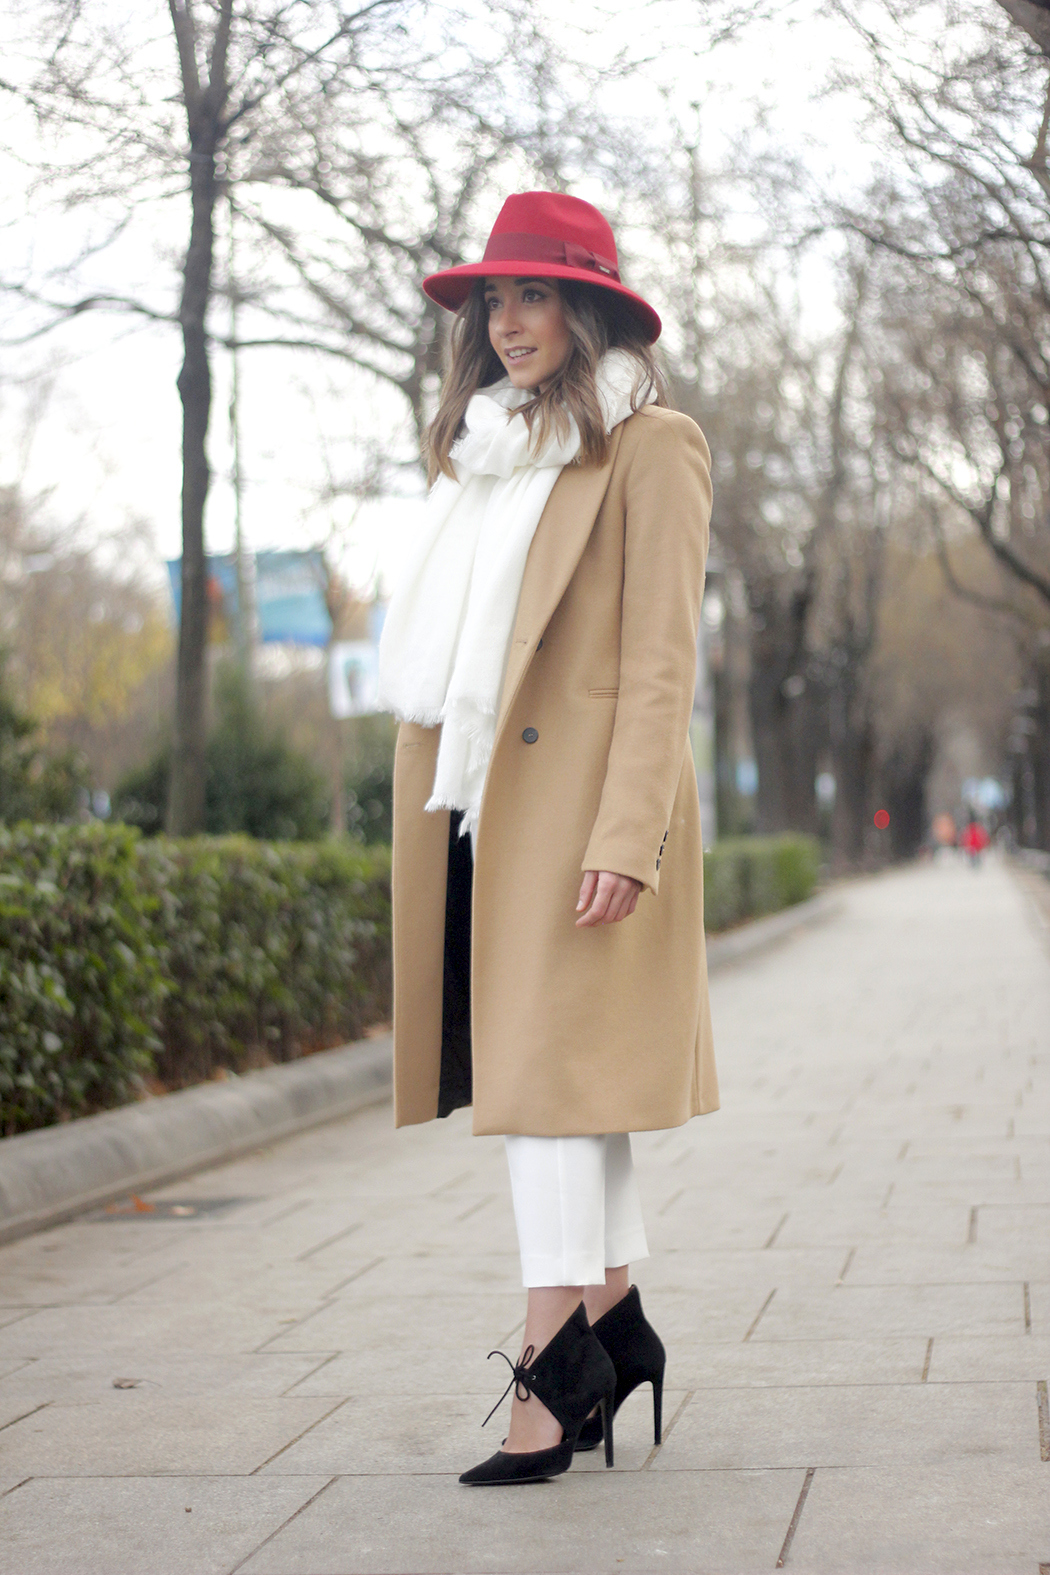 Camel Coat Red Hat Black Heels White pants streetstyle outfit21